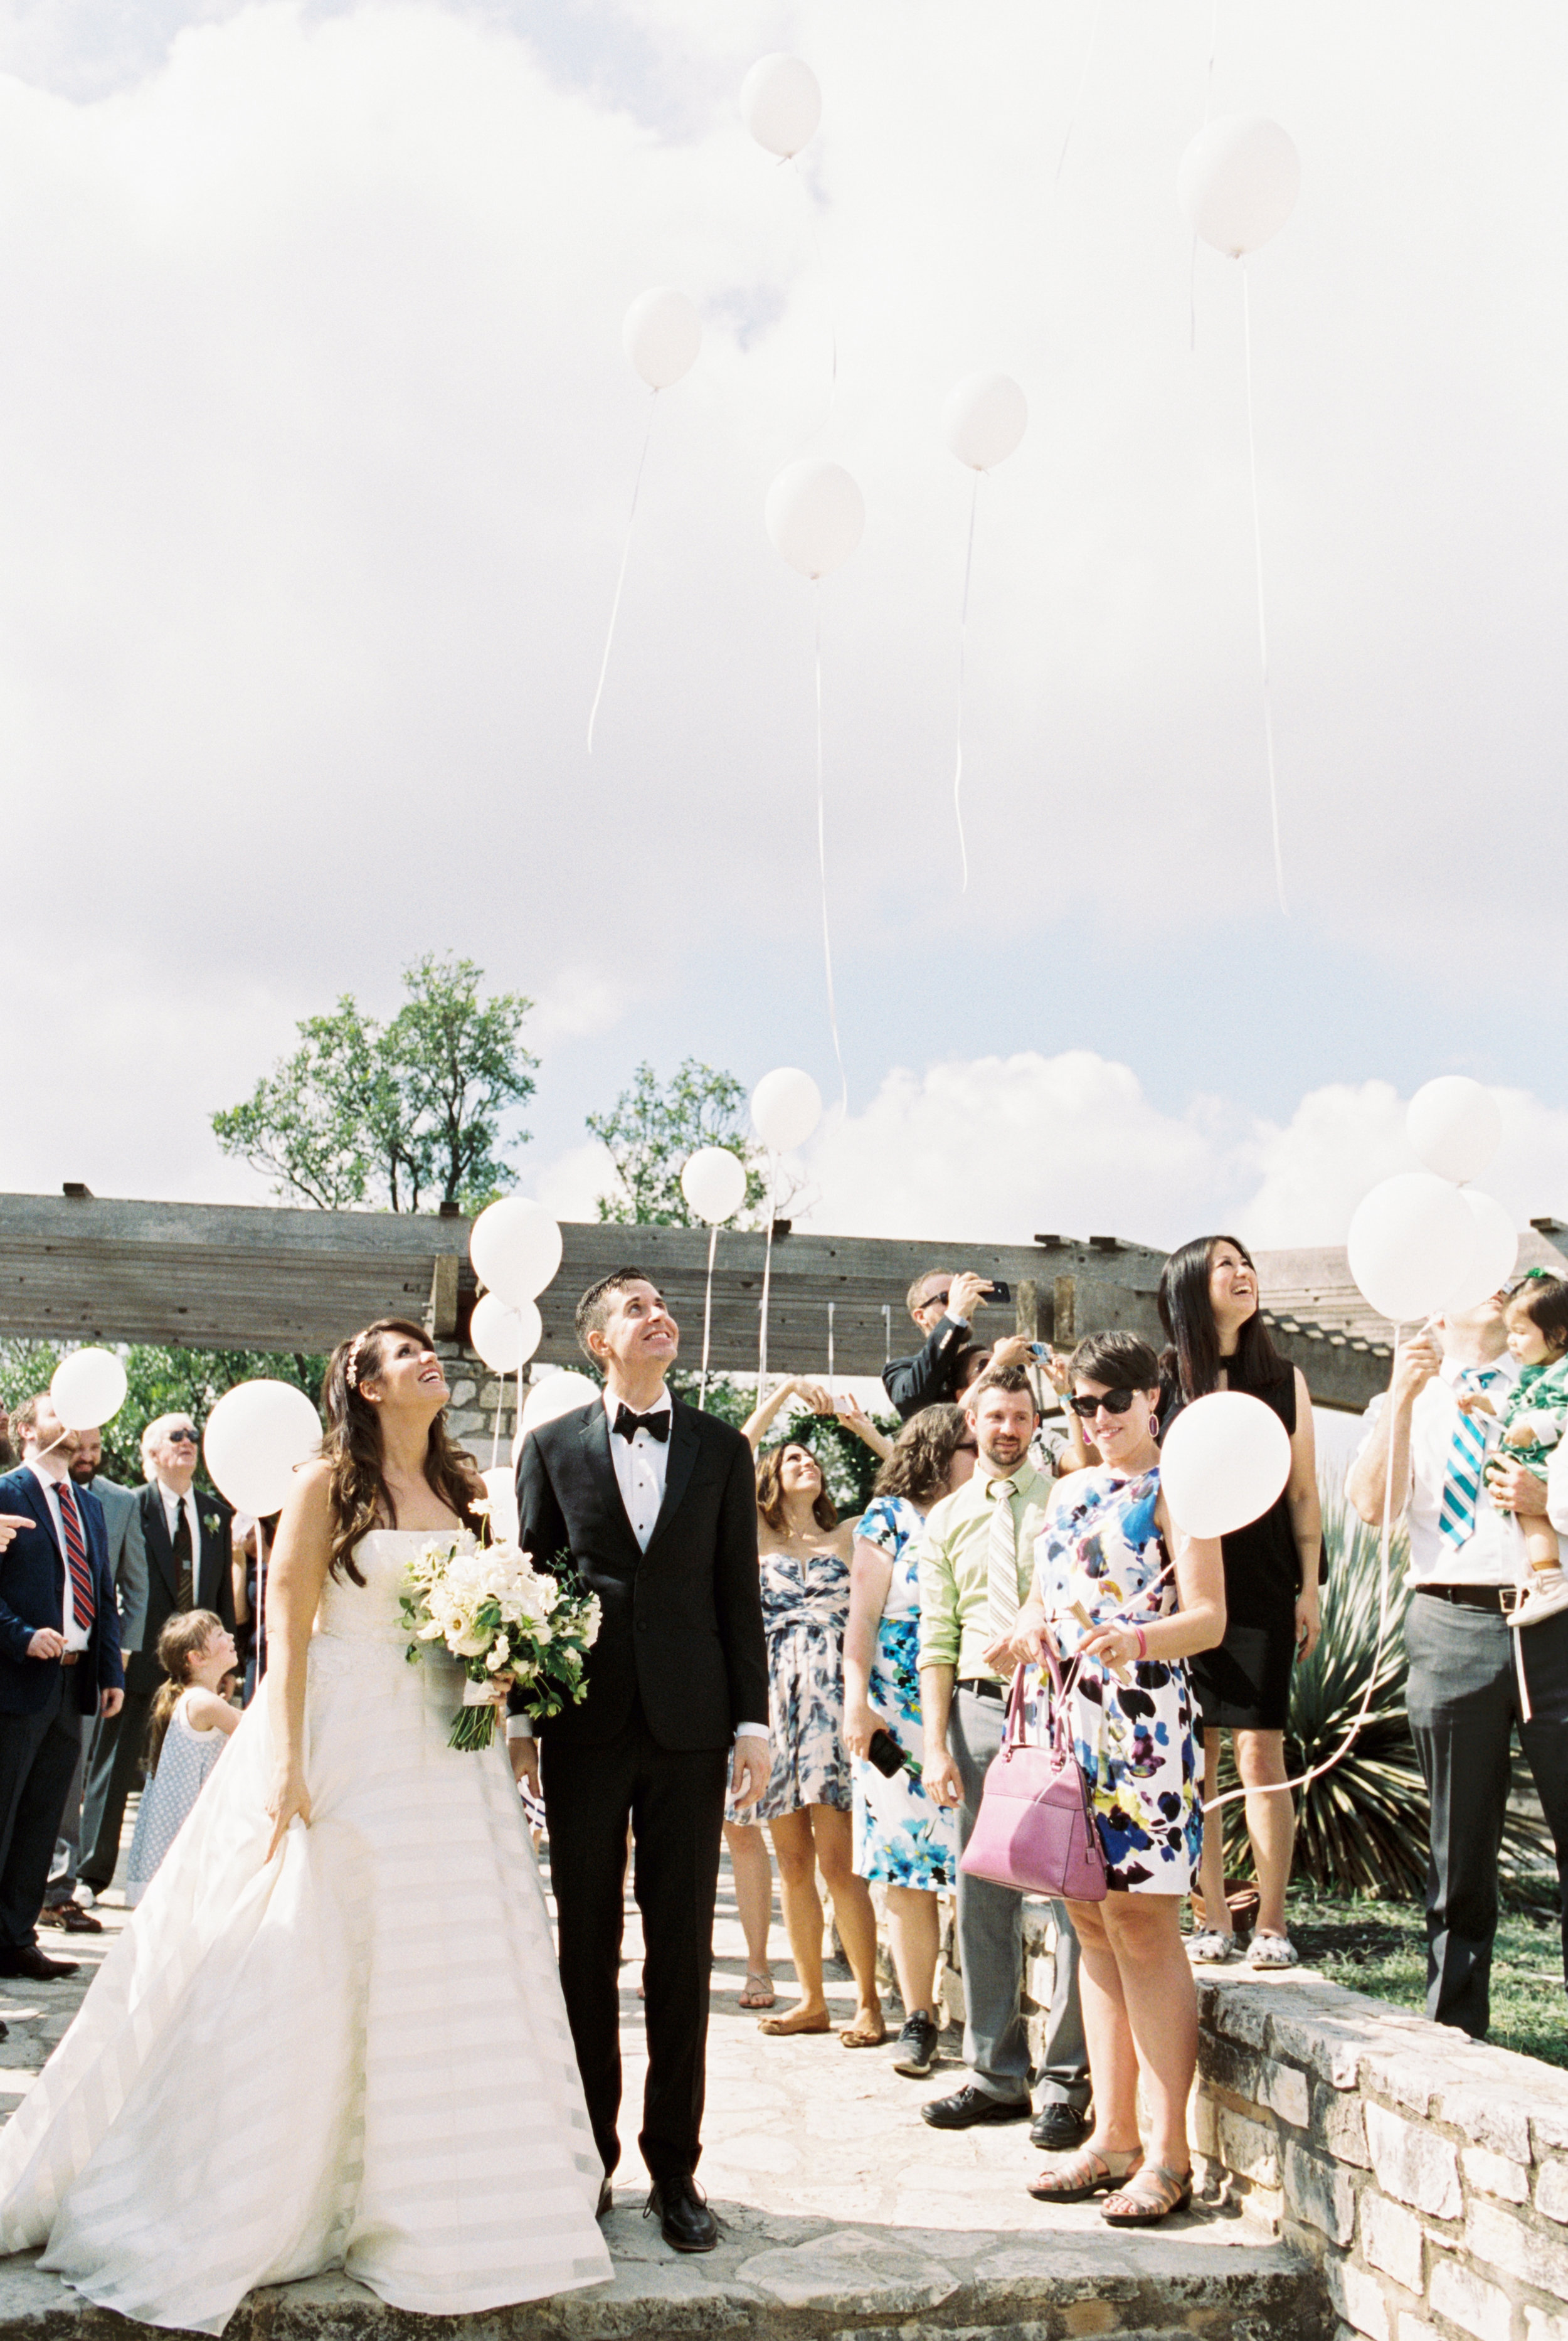 chris&katewedding-98.jpg